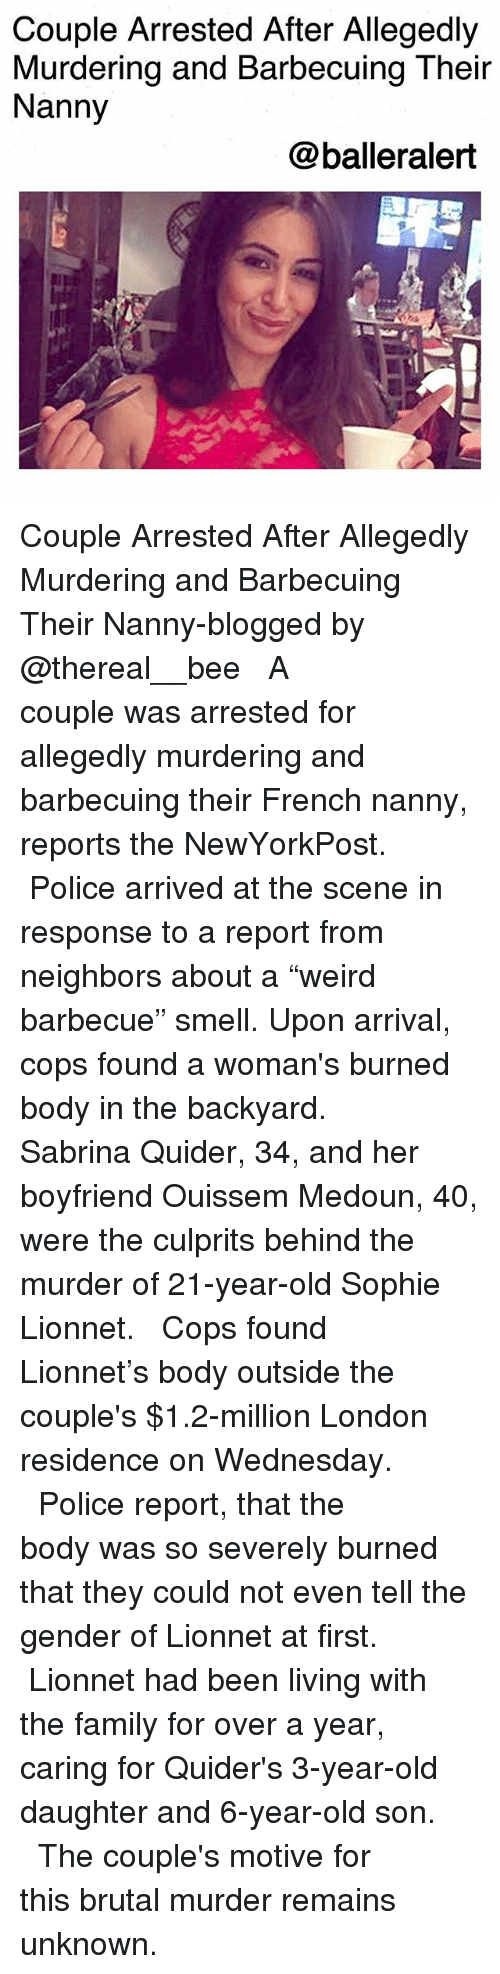 "Family, Memes, and Police: Couple Arrested After Allegedly  Murdering and Barbecuing Their  Nanny  @balleralert Couple Arrested After Allegedly Murdering and Barbecuing Their Nanny-blogged by @thereal__bee ⠀⠀⠀⠀⠀⠀⠀⠀⠀ ⠀⠀ A couple was arrested for allegedly murdering and barbecuing their French nanny, reports the NewYorkPost. ⠀⠀⠀⠀⠀⠀⠀⠀⠀ ⠀⠀ Police arrived at the scene in response to a report from neighbors about a ""weird barbecue"" smell. Upon arrival, cops found a woman's burned body in the backyard. ⠀⠀⠀⠀⠀⠀⠀⠀⠀ ⠀⠀ Sabrina Quider, 34, and her boyfriend Ouissem Medoun, 40, were the culprits behind the murder of 21-year-old Sophie Lionnet. ⠀⠀⠀⠀⠀⠀⠀⠀⠀ ⠀⠀ Cops found Lionnet's body outside the couple's $1.2-million London residence on Wednesday. ⠀⠀⠀⠀⠀⠀⠀⠀⠀ ⠀⠀ Police report, that the body was so severely burned that they could not even tell the gender of Lionnet at first. ⠀⠀⠀⠀⠀⠀⠀⠀⠀ ⠀⠀ Lionnet had been living with the family for over a year, caring for Quider's 3-year-old daughter and 6-year-old son. ⠀⠀⠀⠀⠀⠀⠀⠀⠀ ⠀⠀ The couple's motive for this brutal murder remains unknown."